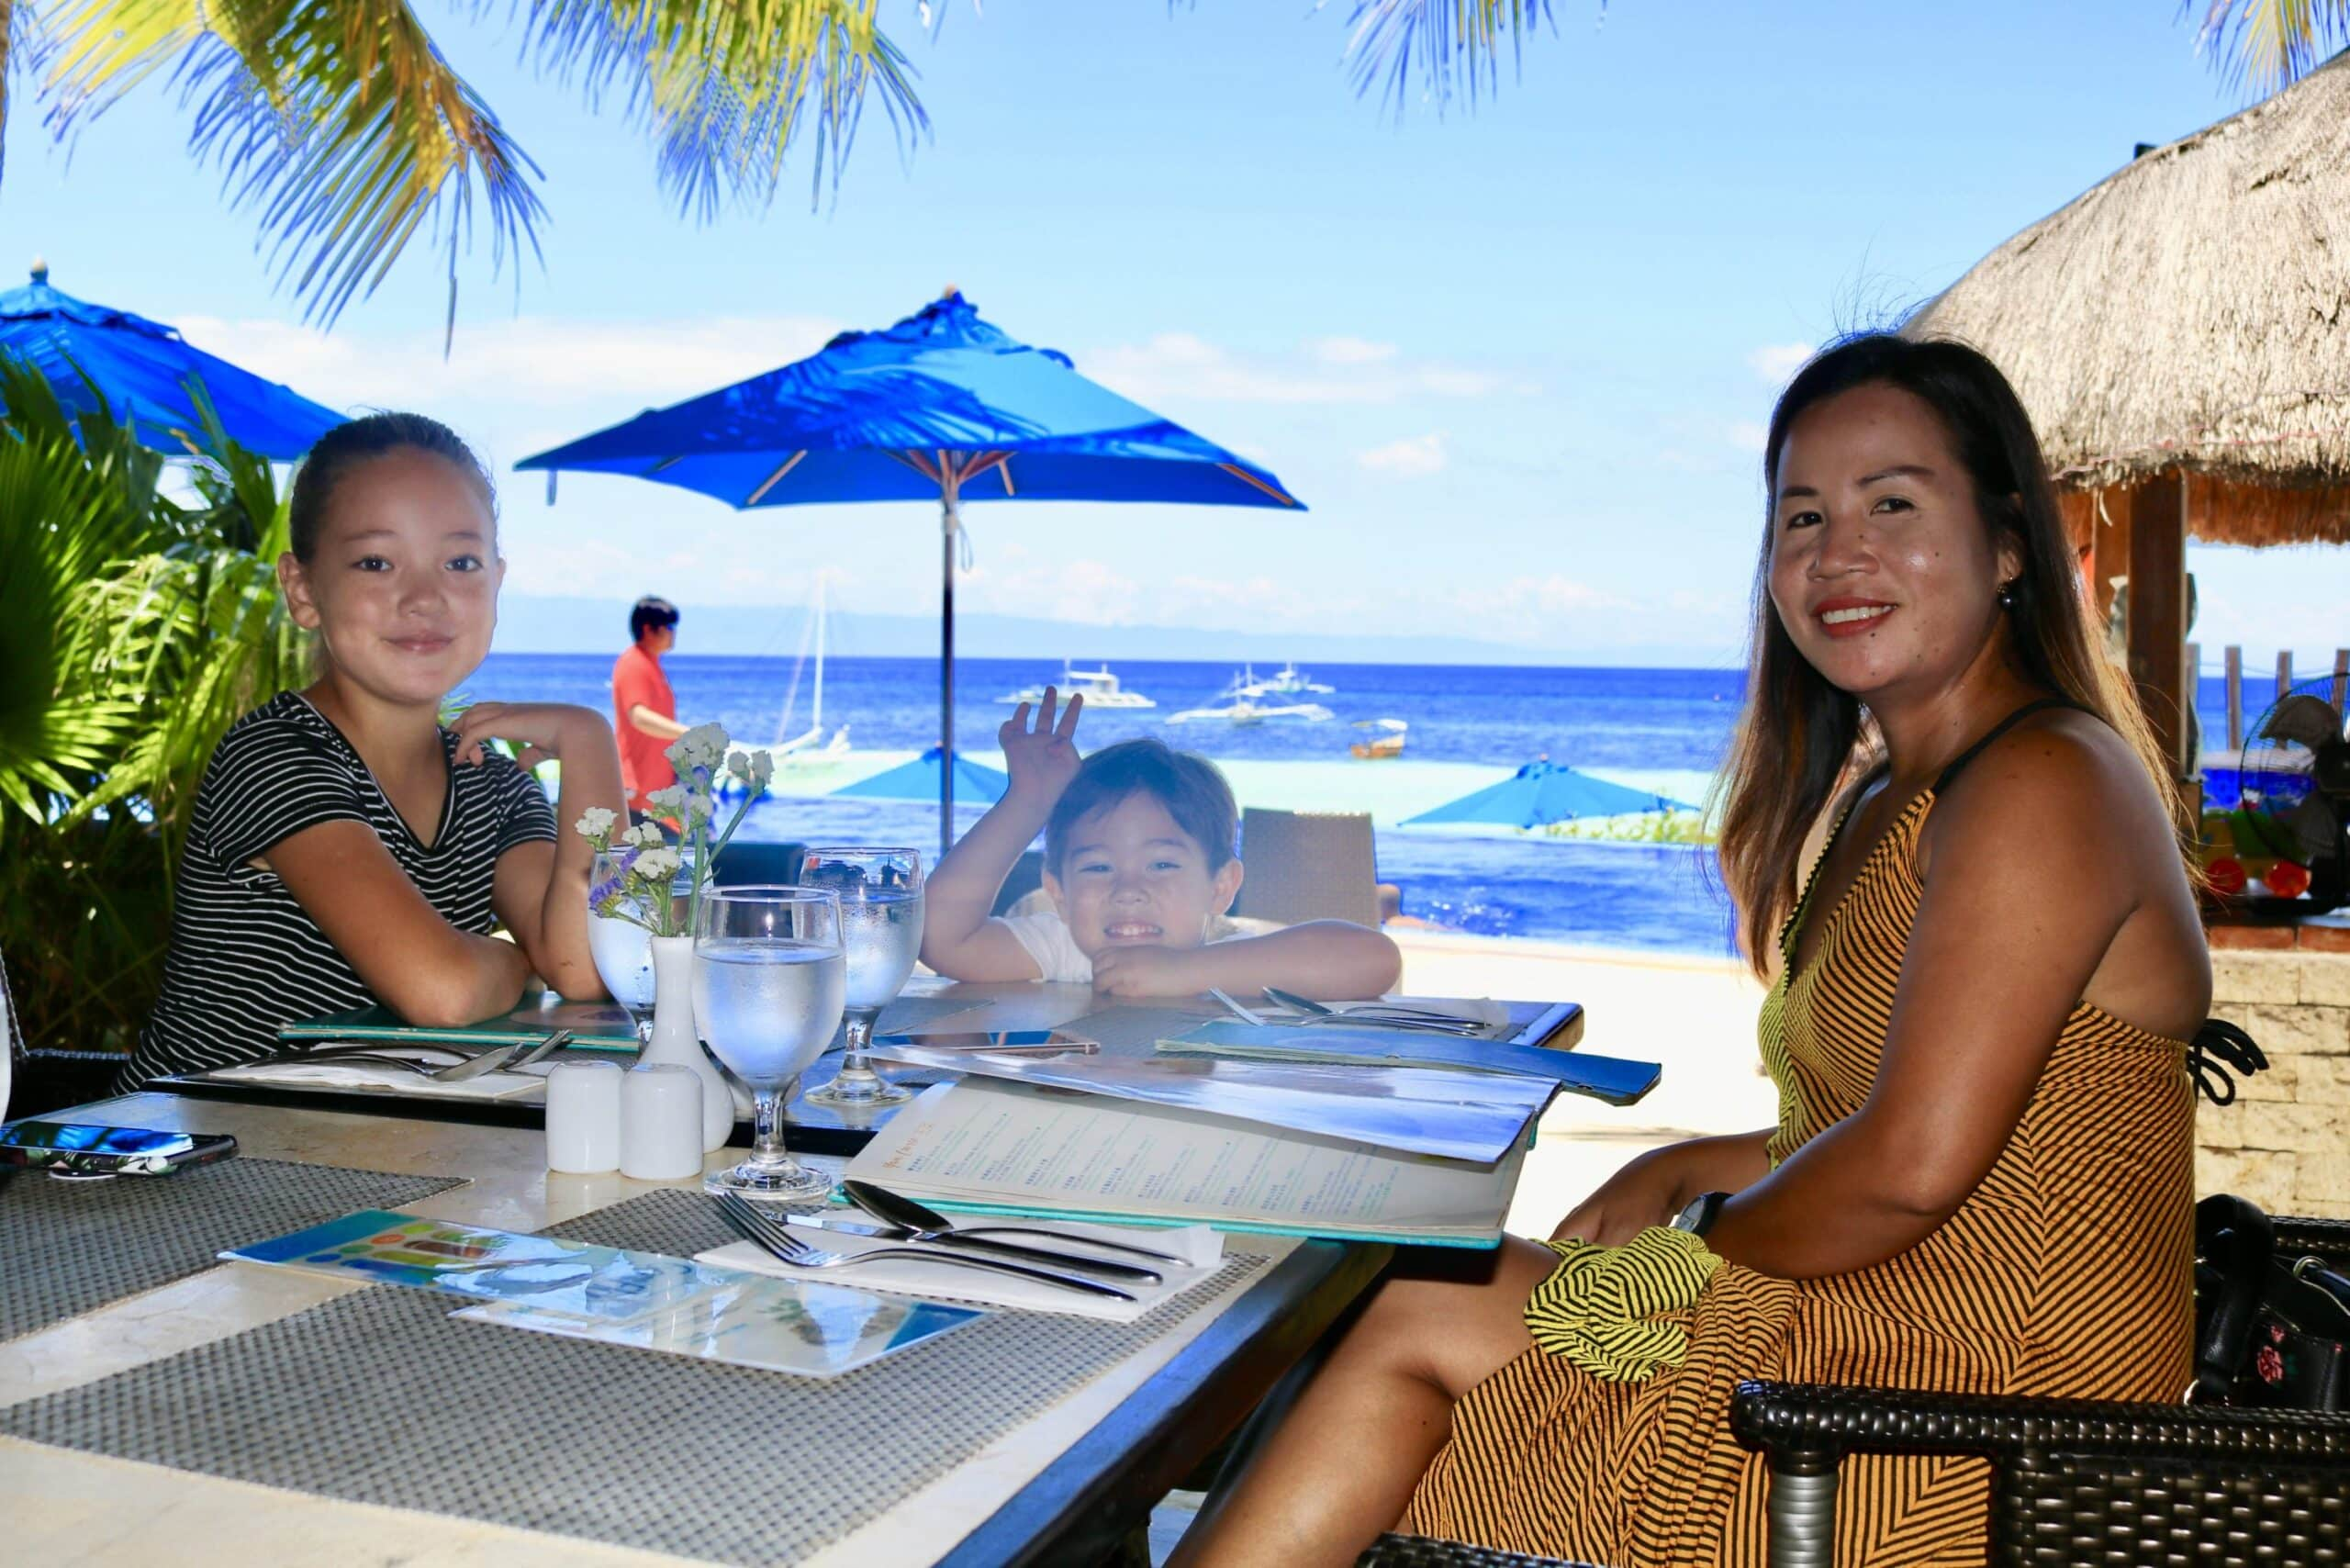 Lunch @ The Bellevue Resort, Panglao Island, The Philippines